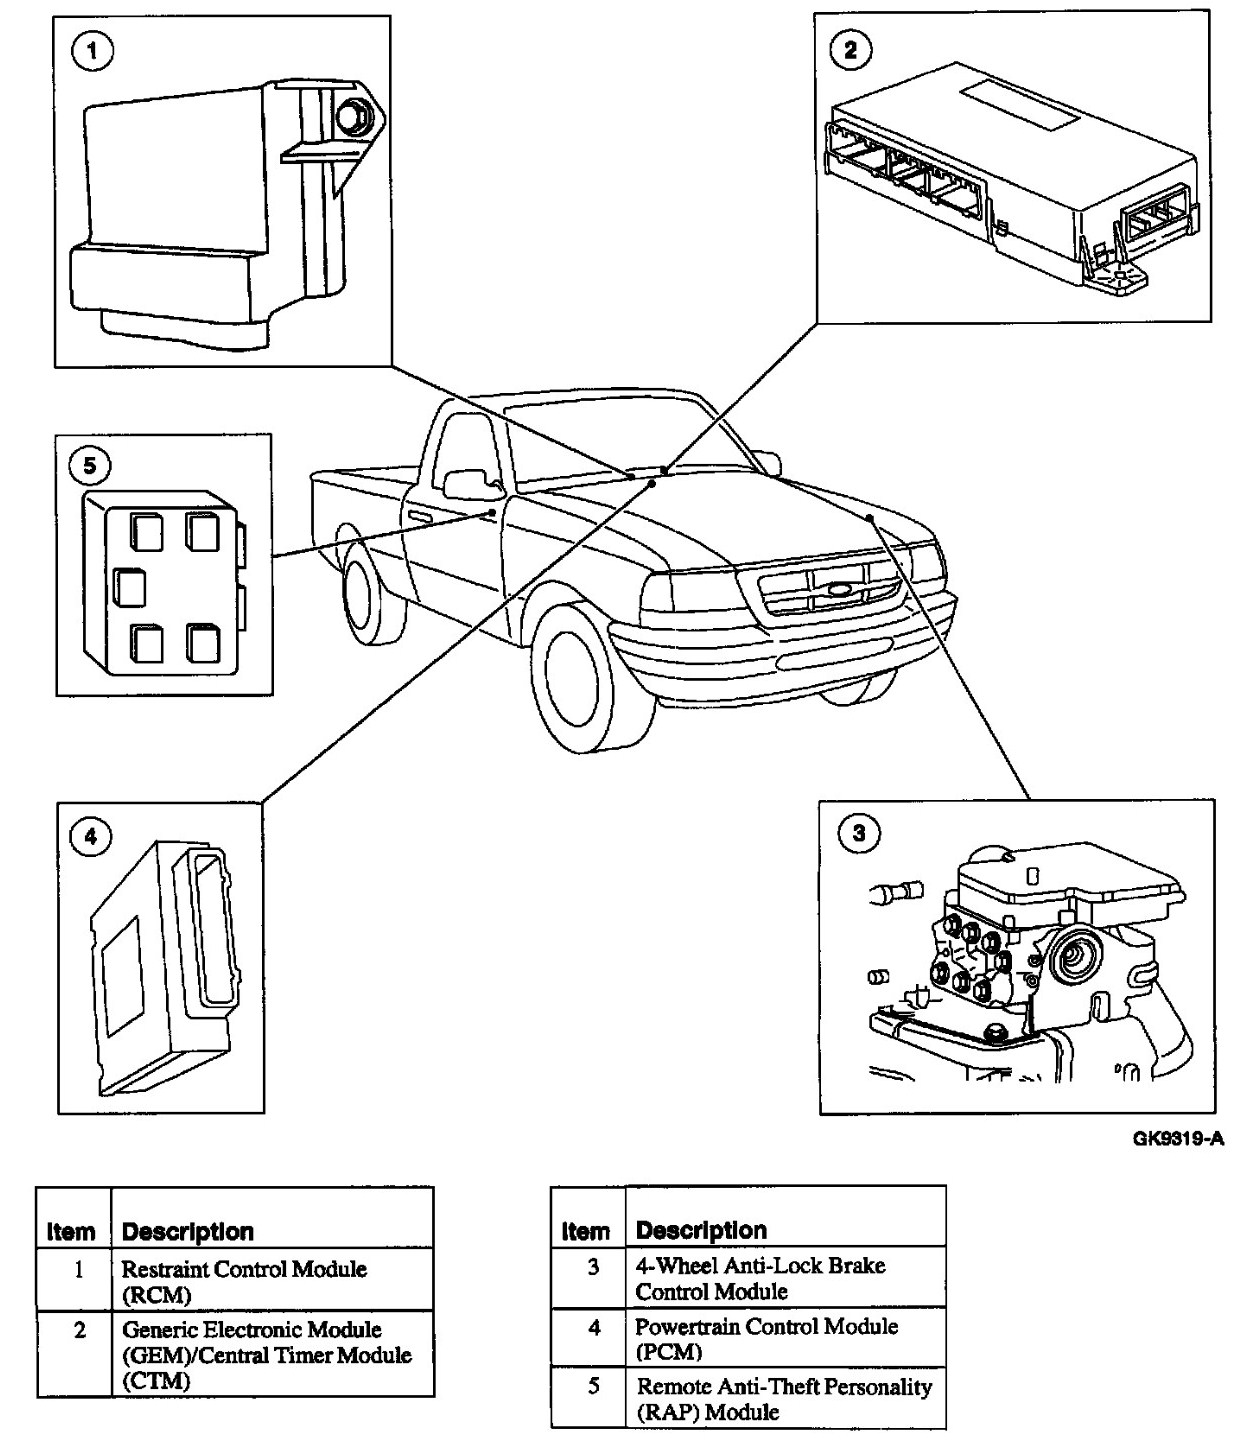 5bq4b Ford Taurus 1990 Ford Taurus Air Bag Light Blinks Times moreover Ford Expedition Serpentine Belt Diagram as well 2003 Porsche Boxster Fuse Diagram moreover Nissan Altima Air Bag Sensor Location additionally 95 Mustang Air Bag Module Location. on ford focus air bag sensor location